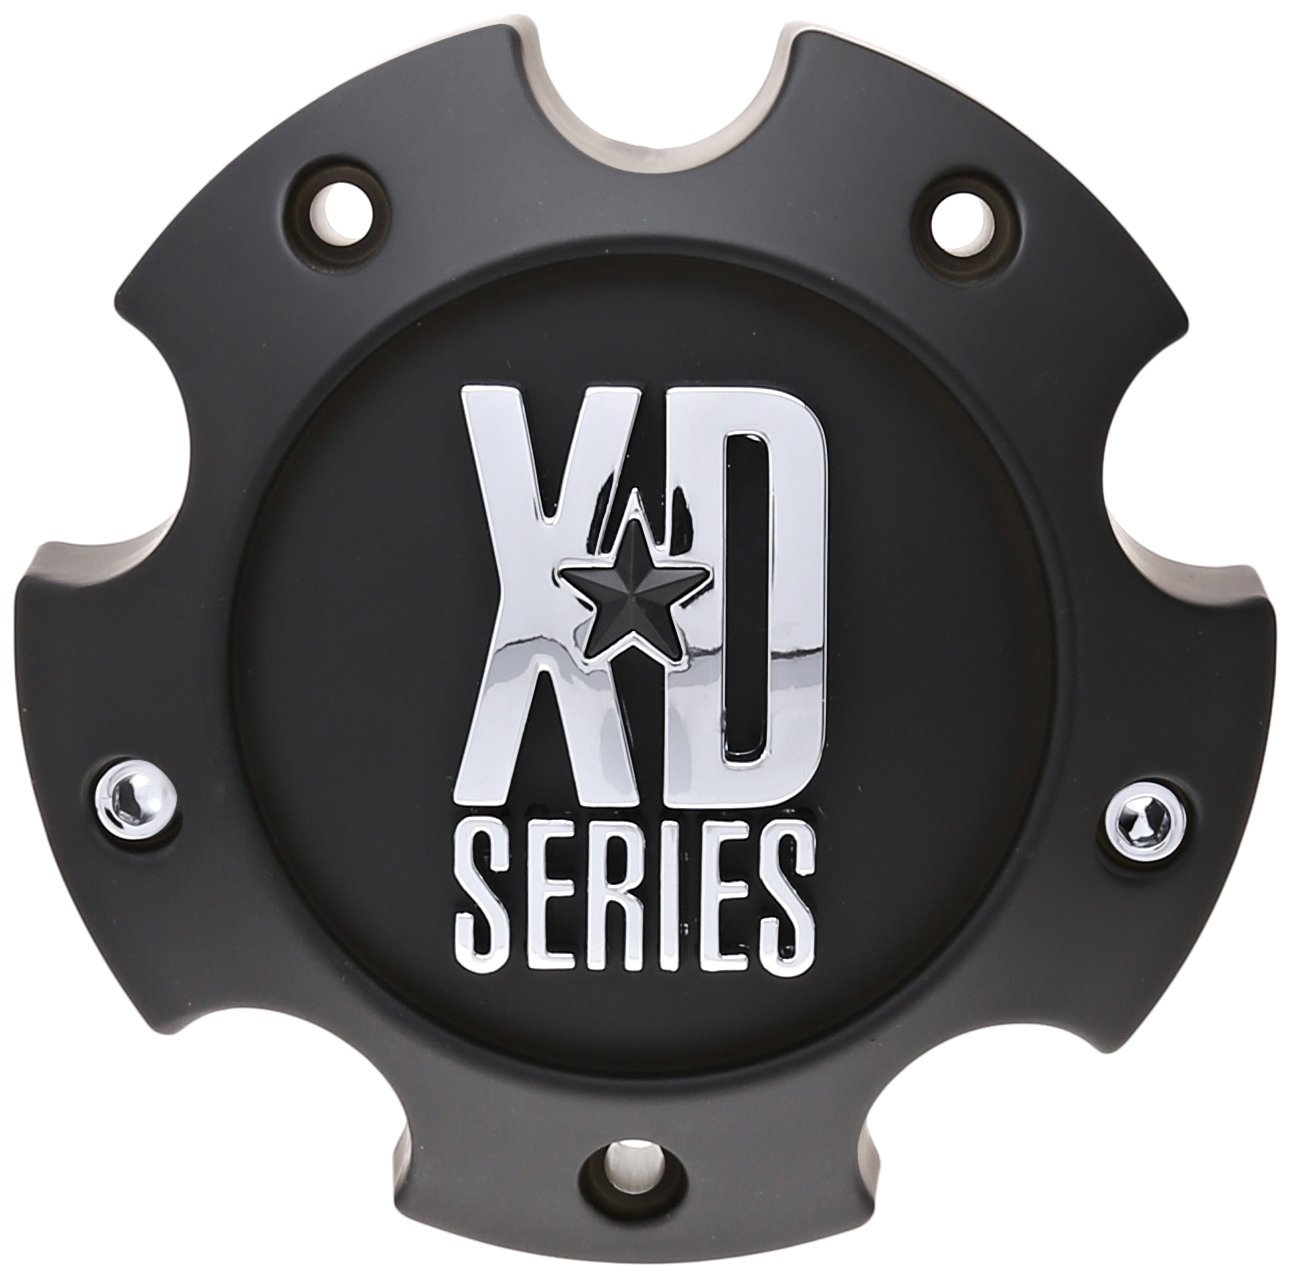 KMC-XD-Series-796-797-798-Matte-Black-5-Lug-Wheel-Rim-Center-Cap-1079L145A